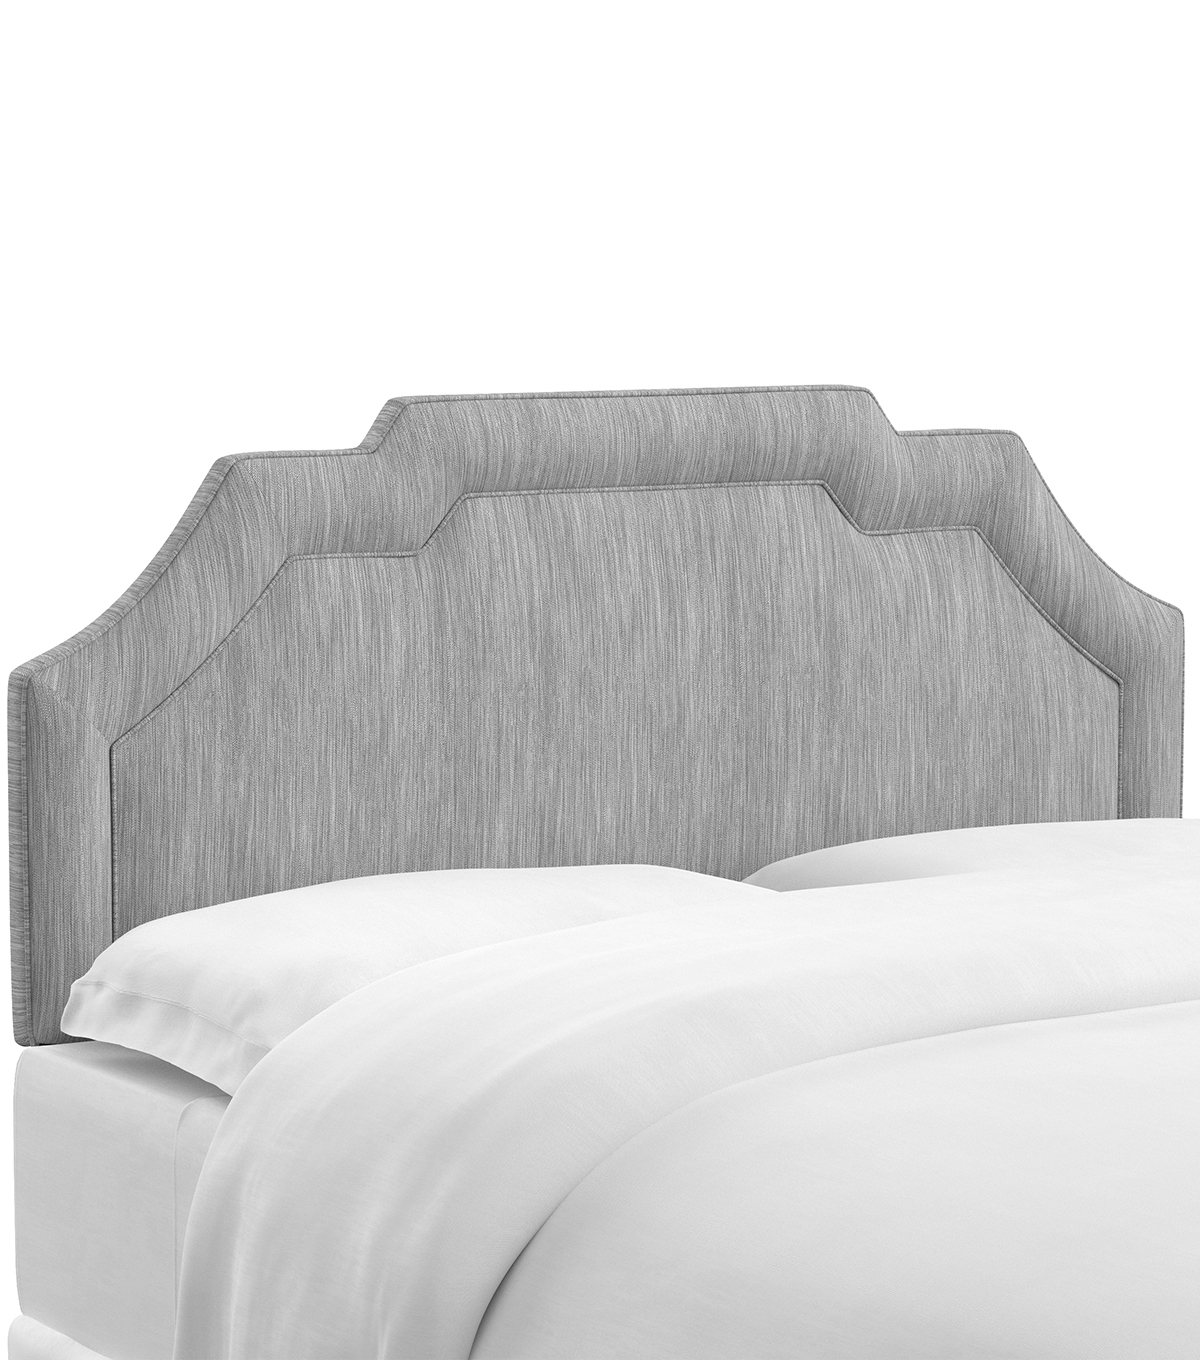 Skyline Furniture Notched Border Headboard-King